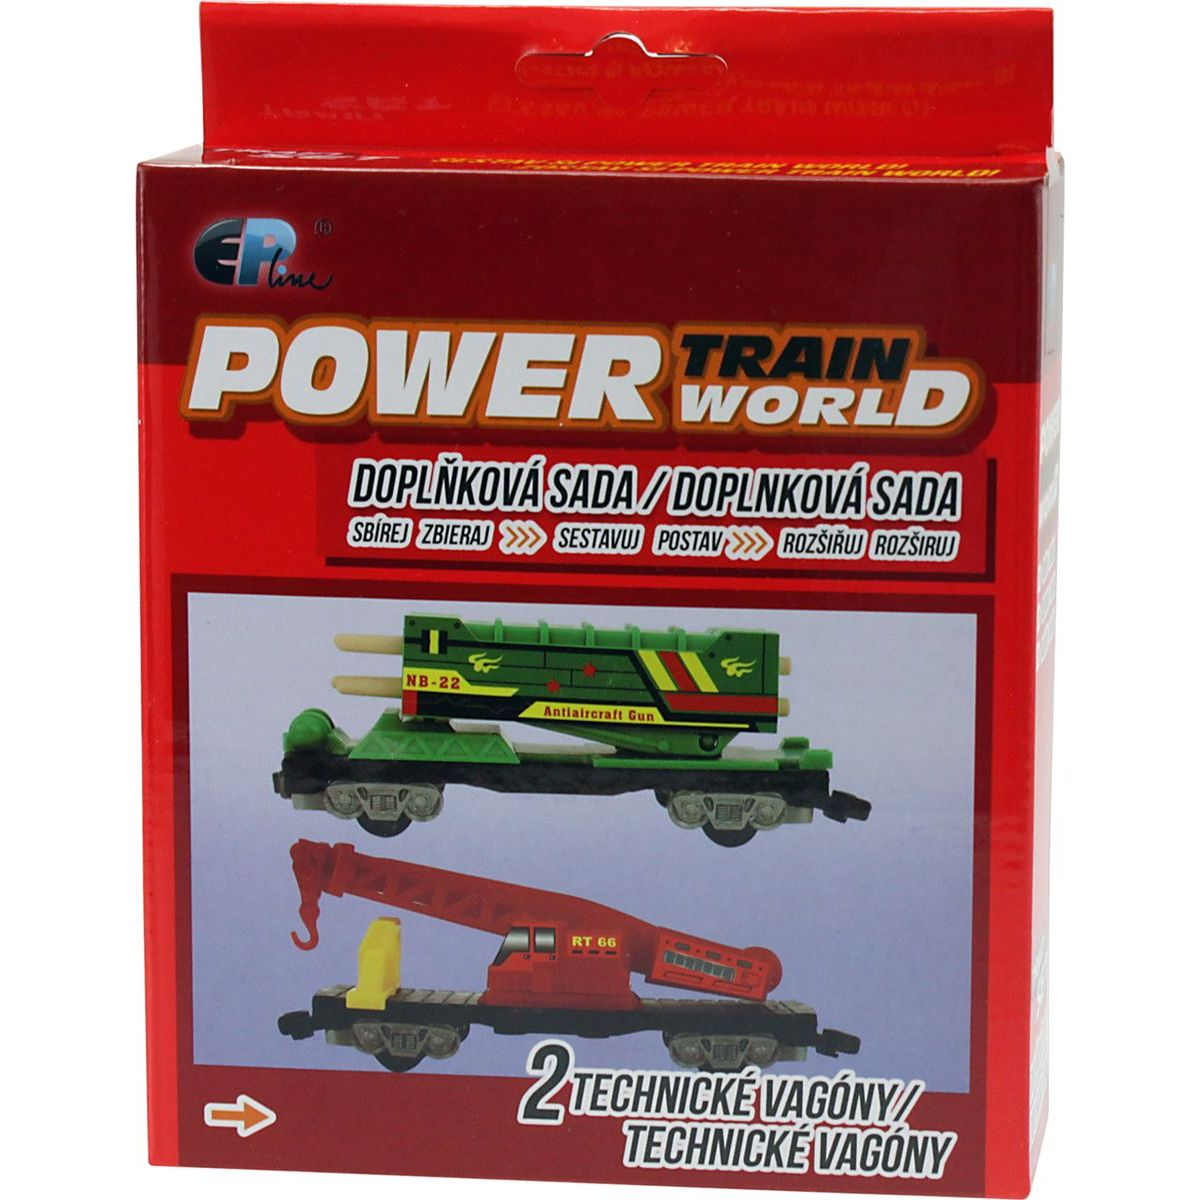 Power Train World Technické vagóny